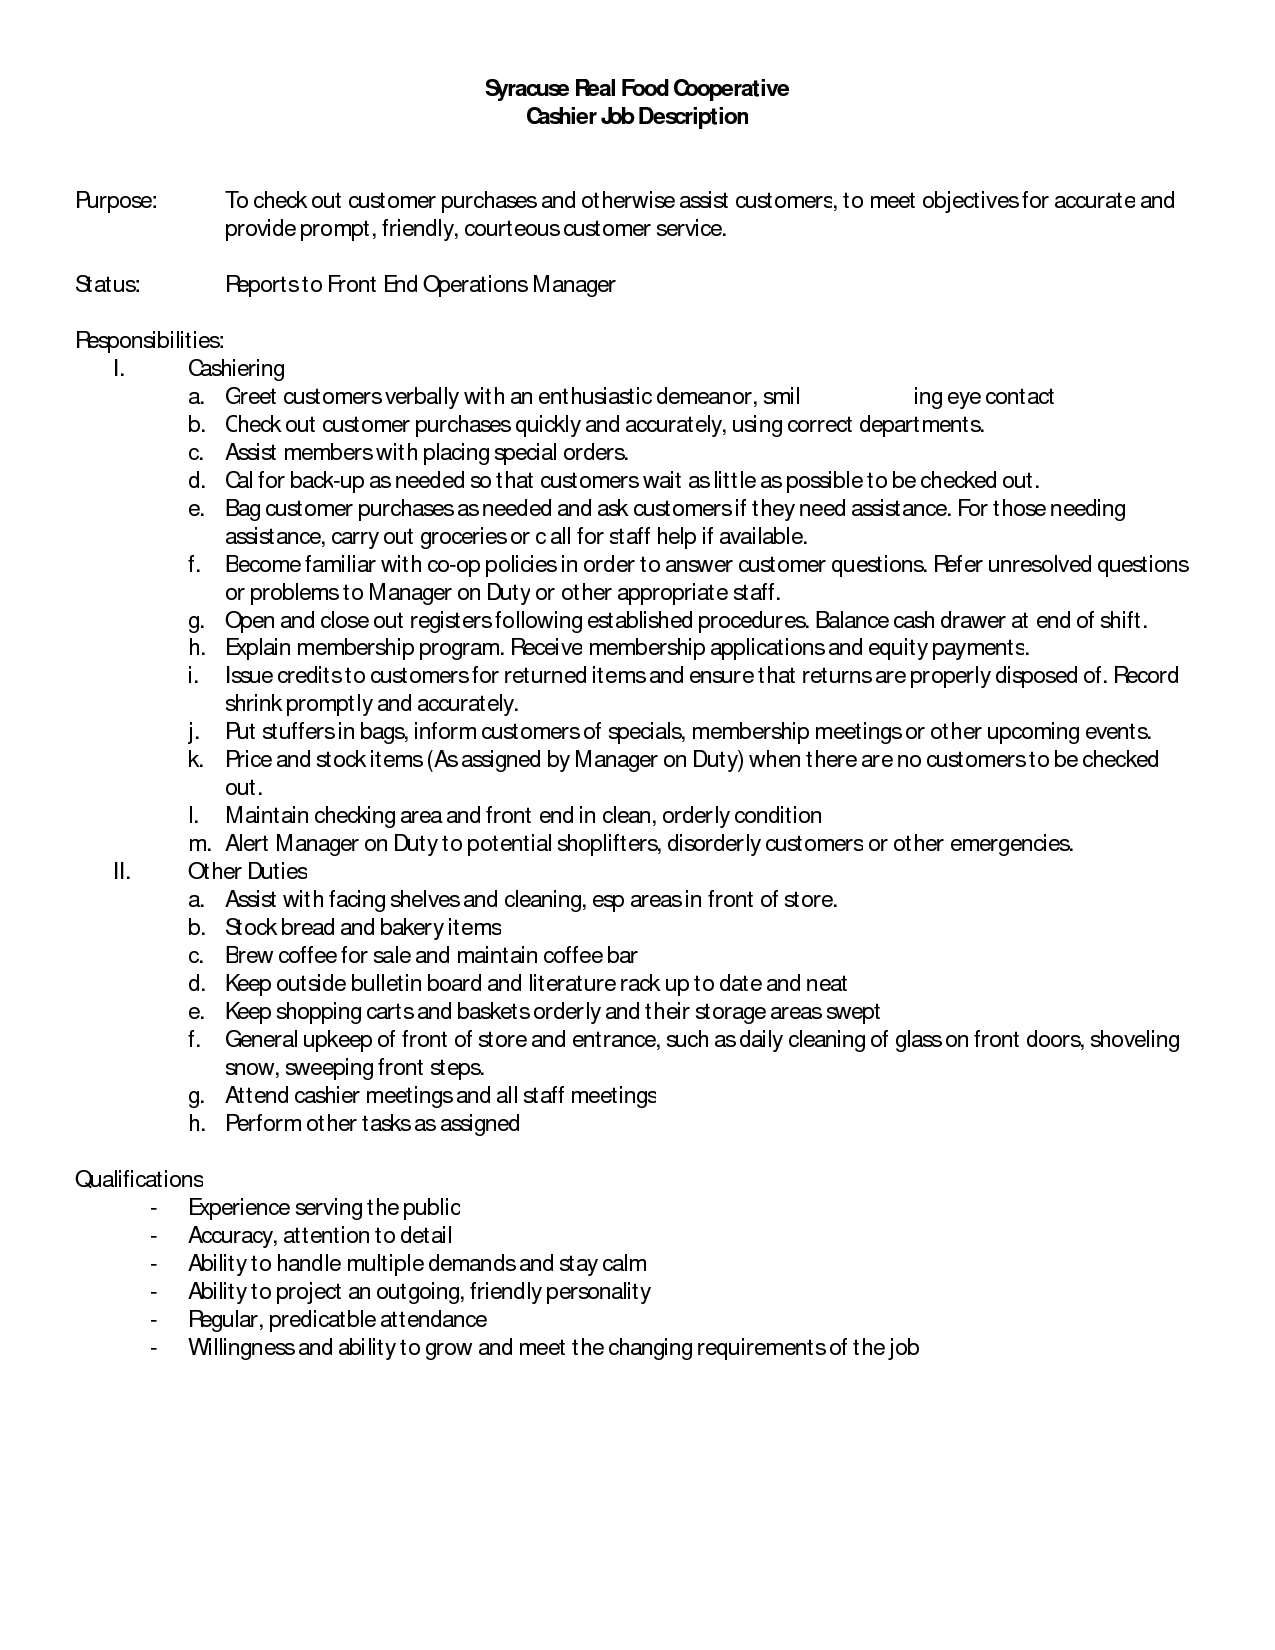 deli description resume - Resumes For Office Jobs